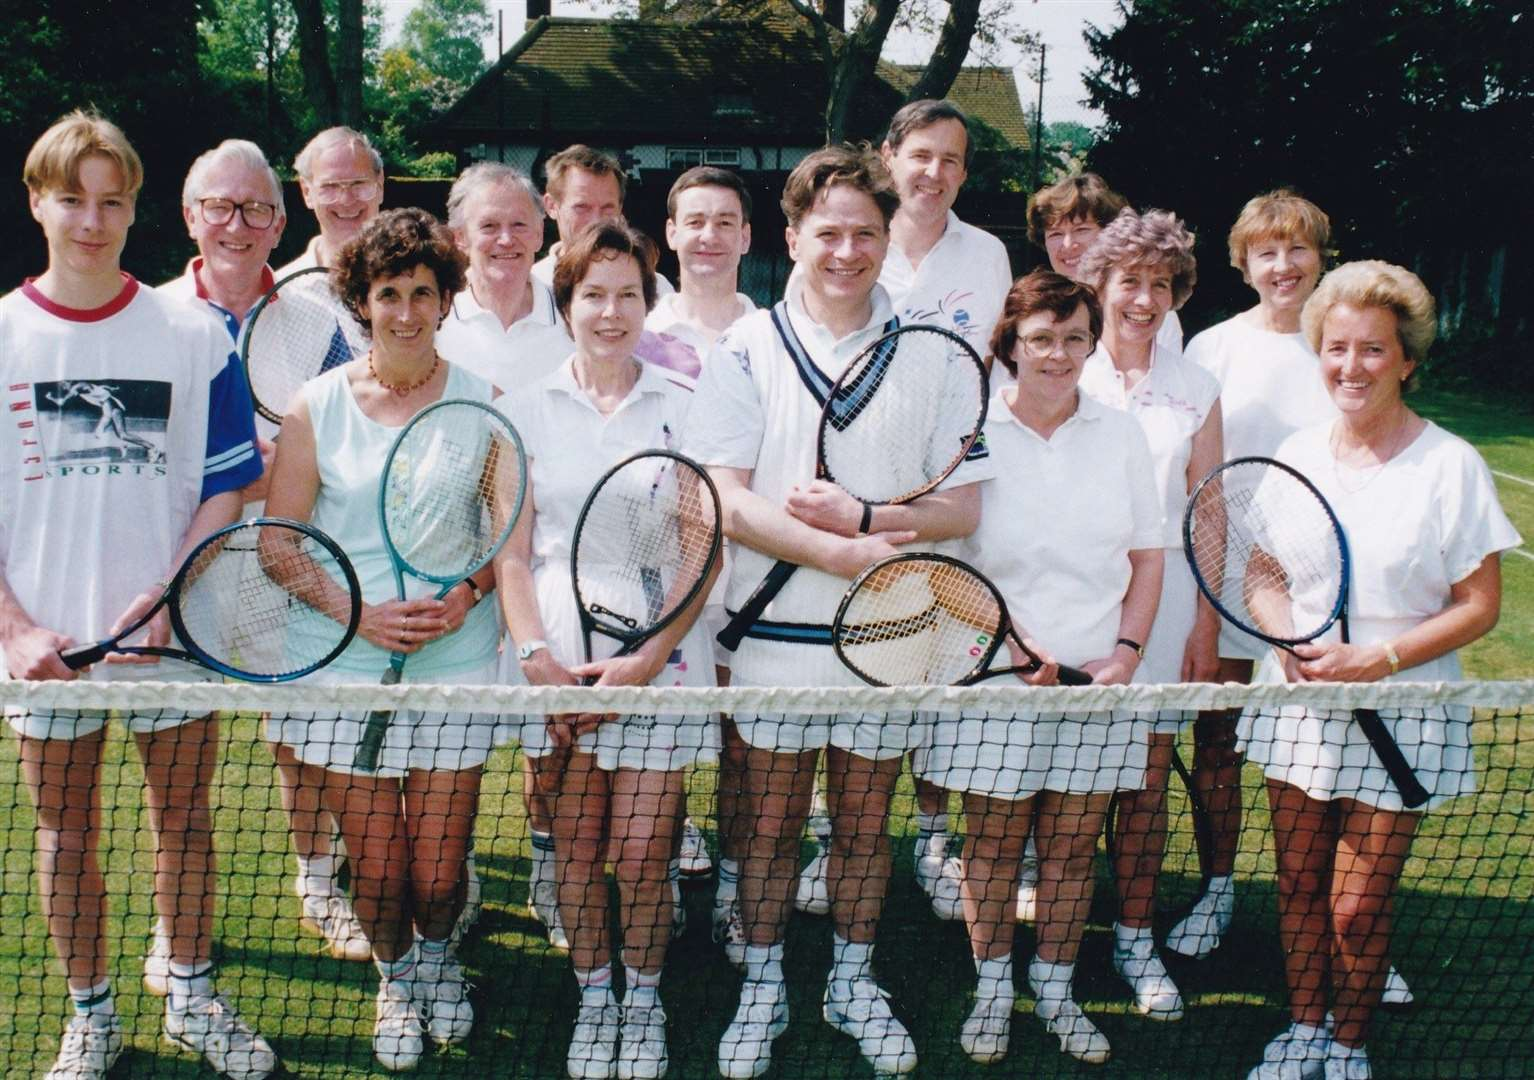 An old club photo from the 1990s, taken at Windmill Way courts. (13343913)